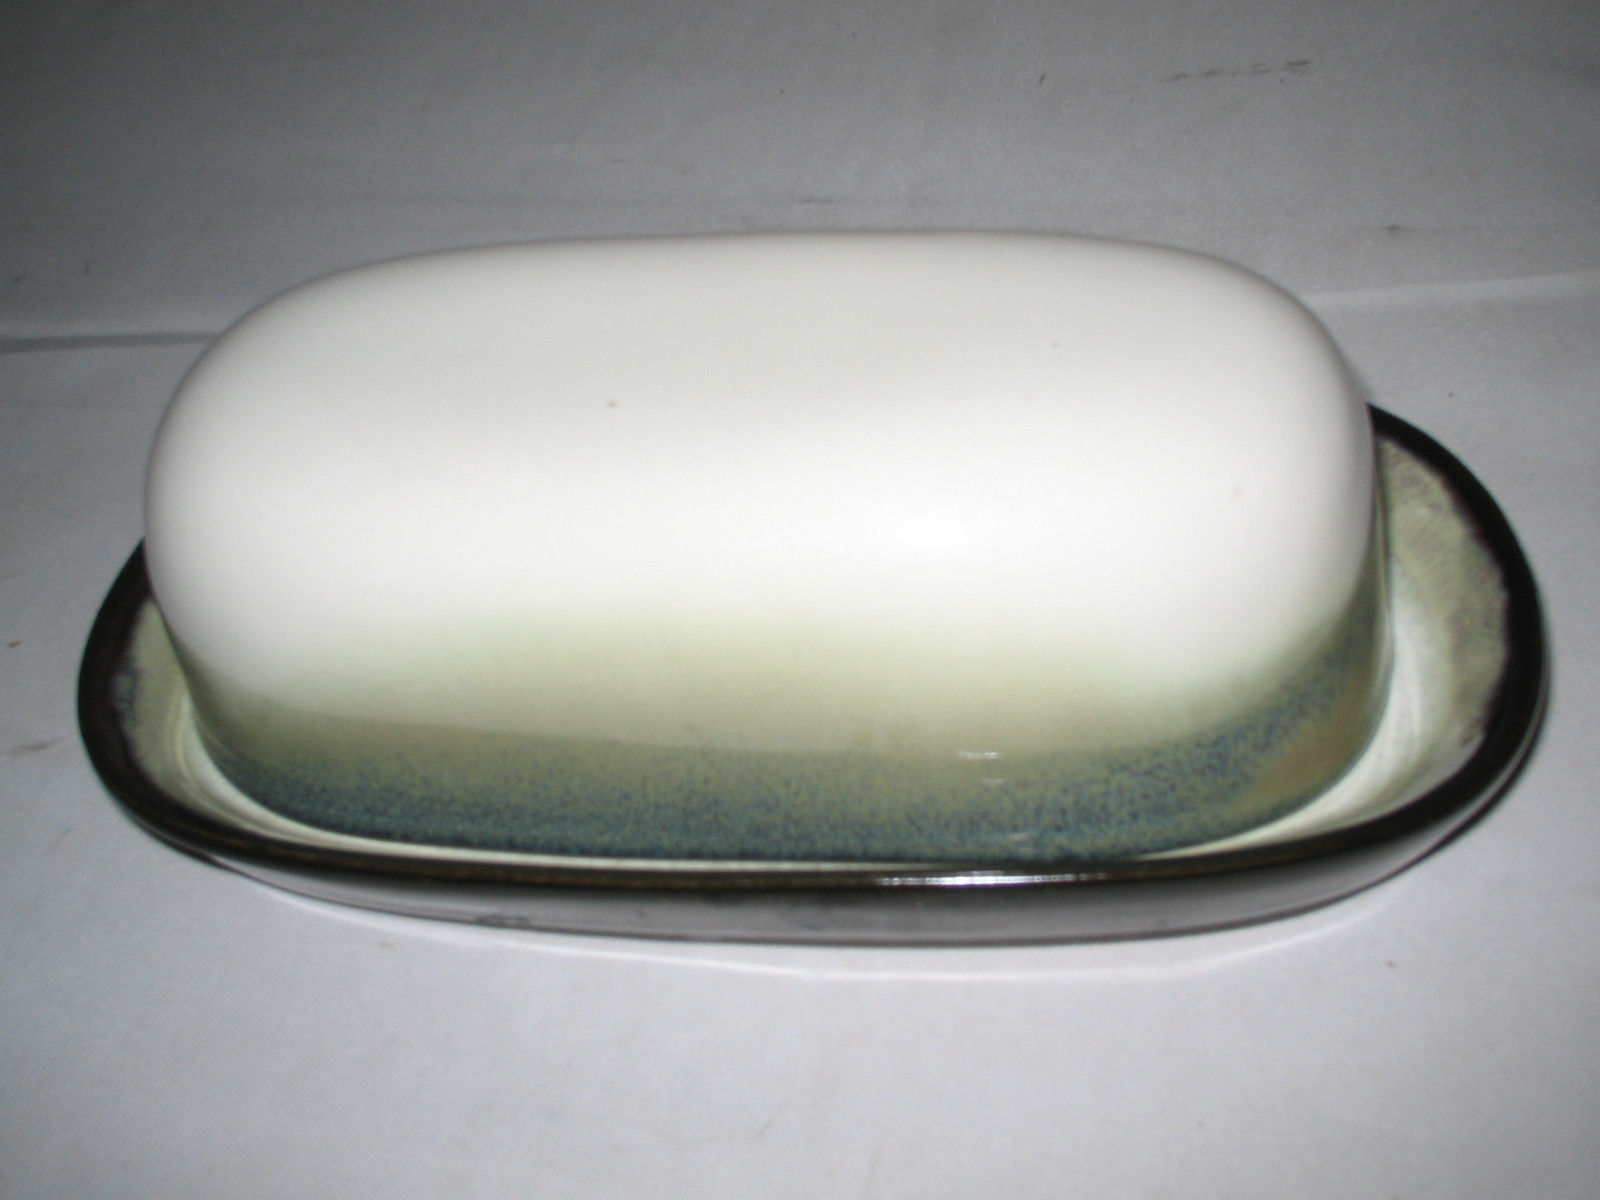 SANGO Nova Black Butter Dish # 4932 and 18 similar items